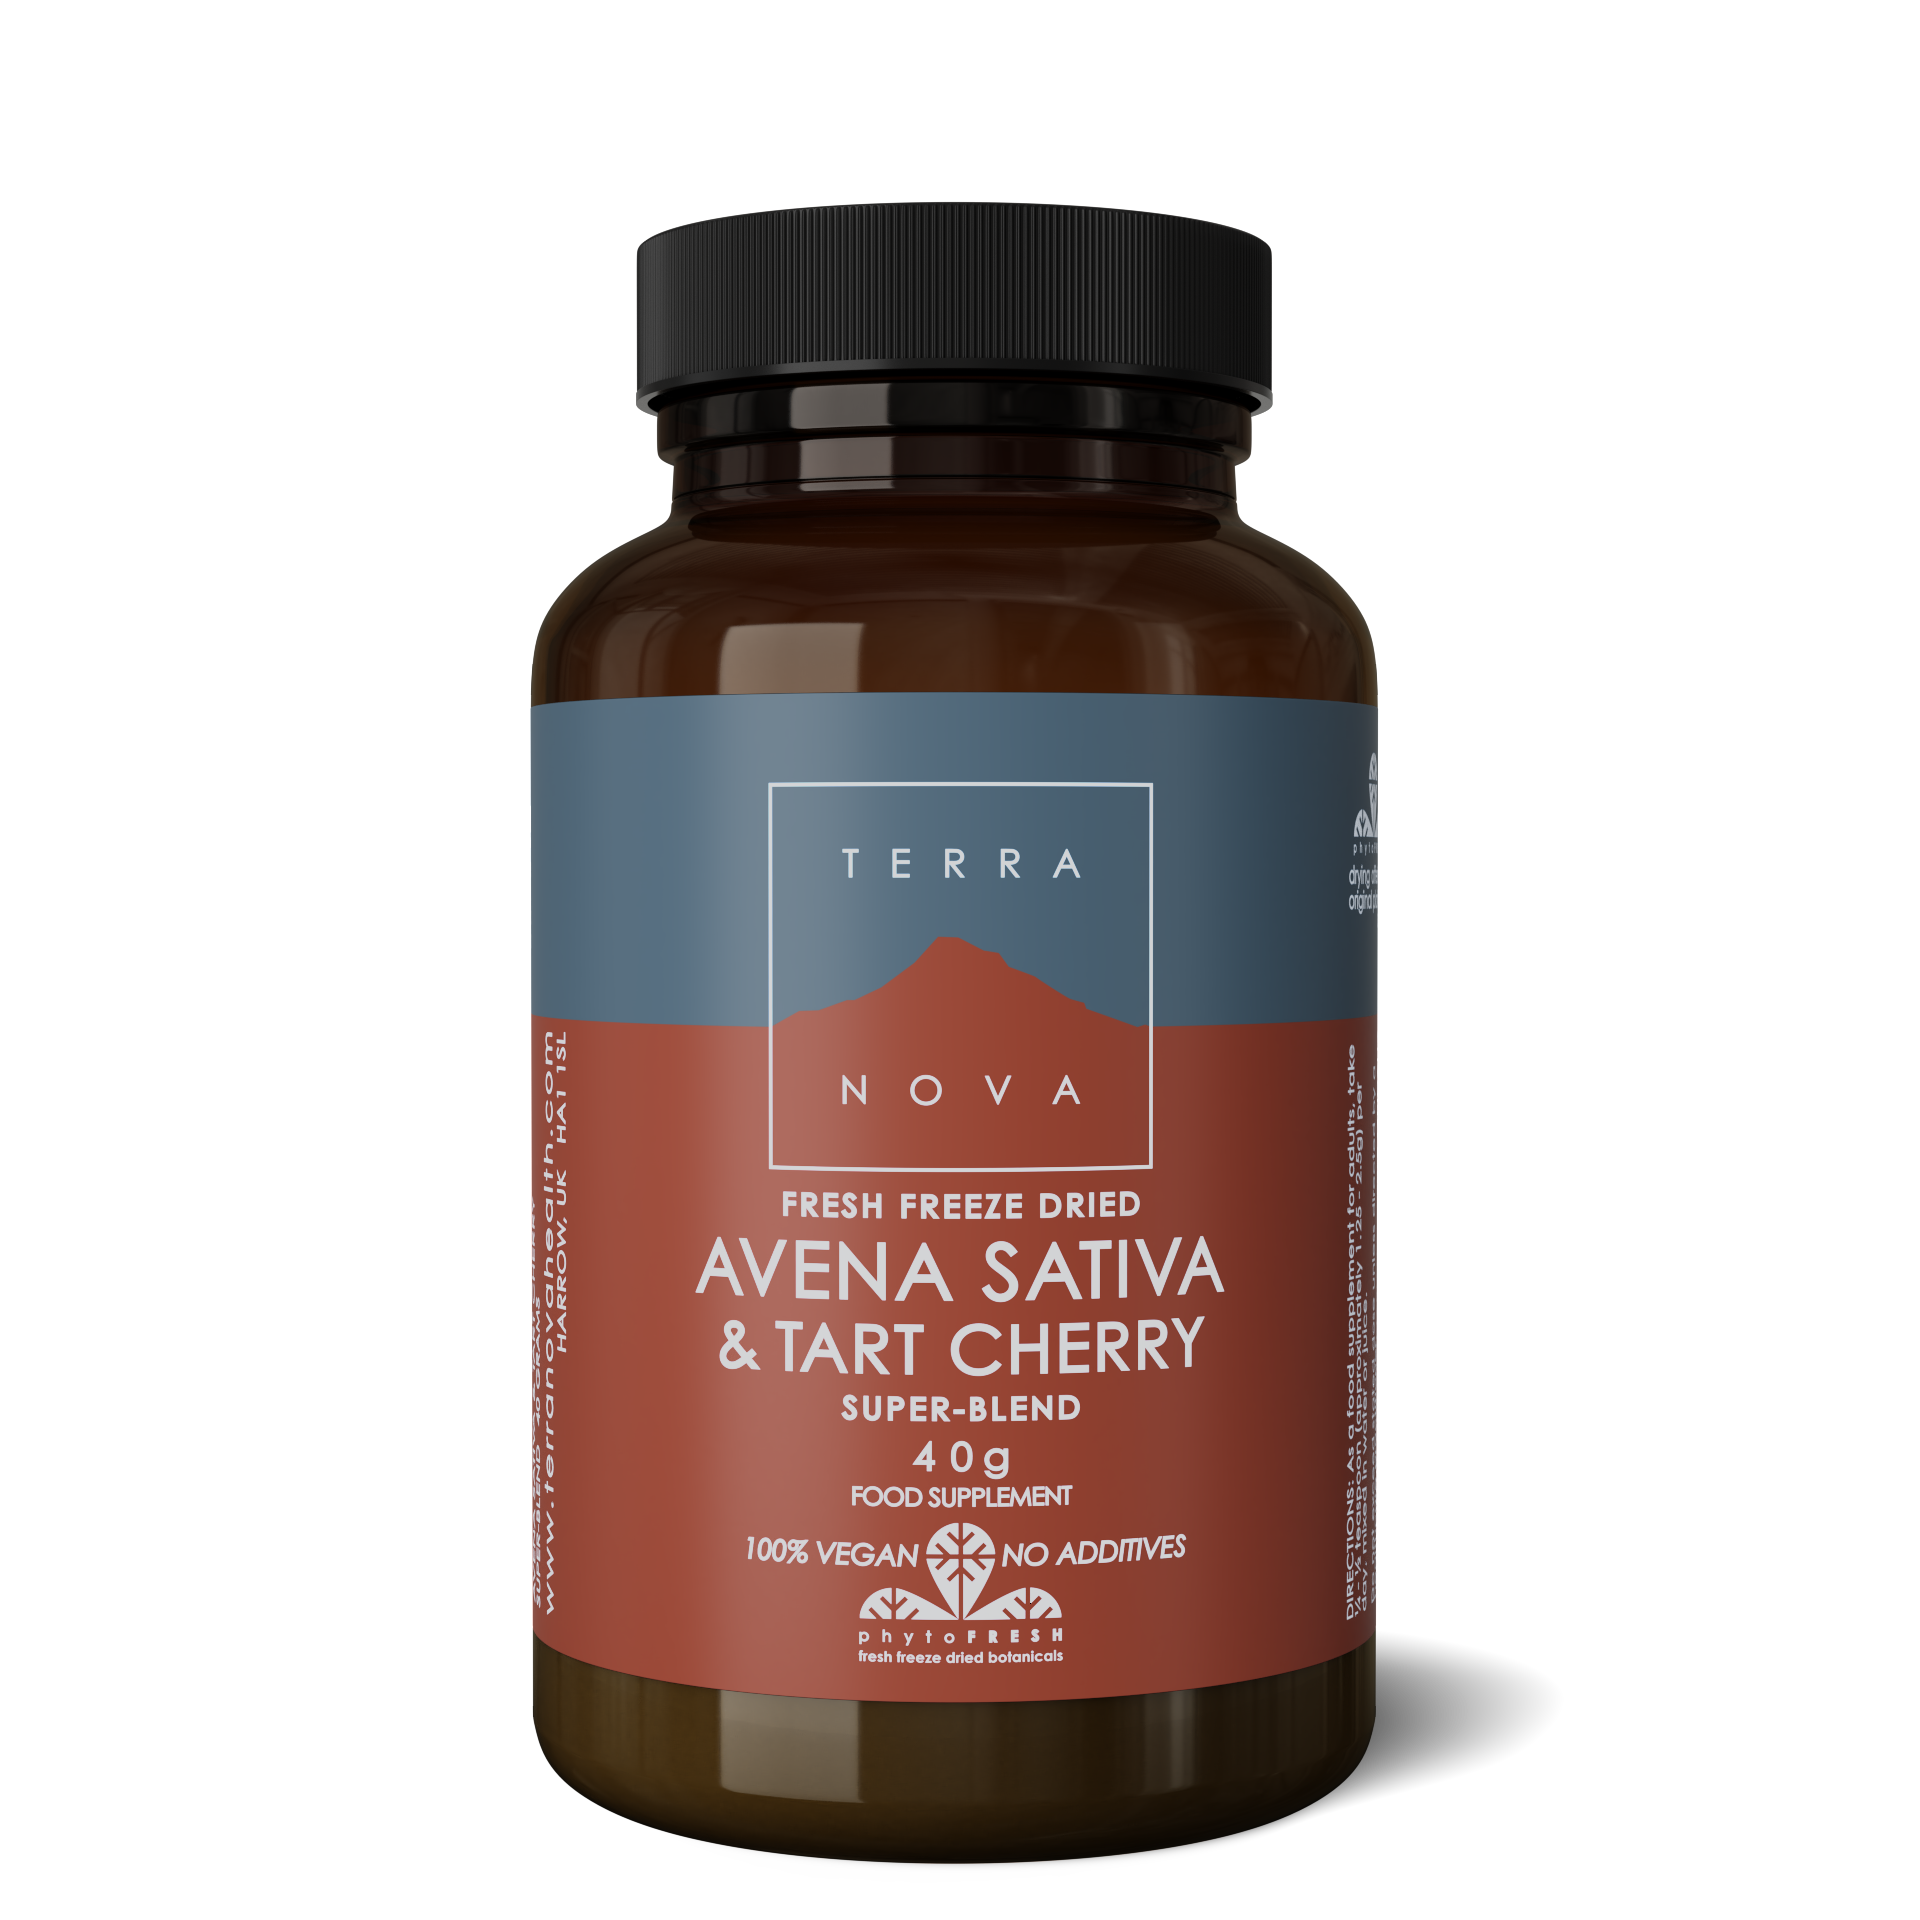 Avena Sativa & Tart Cherry Super-Blend